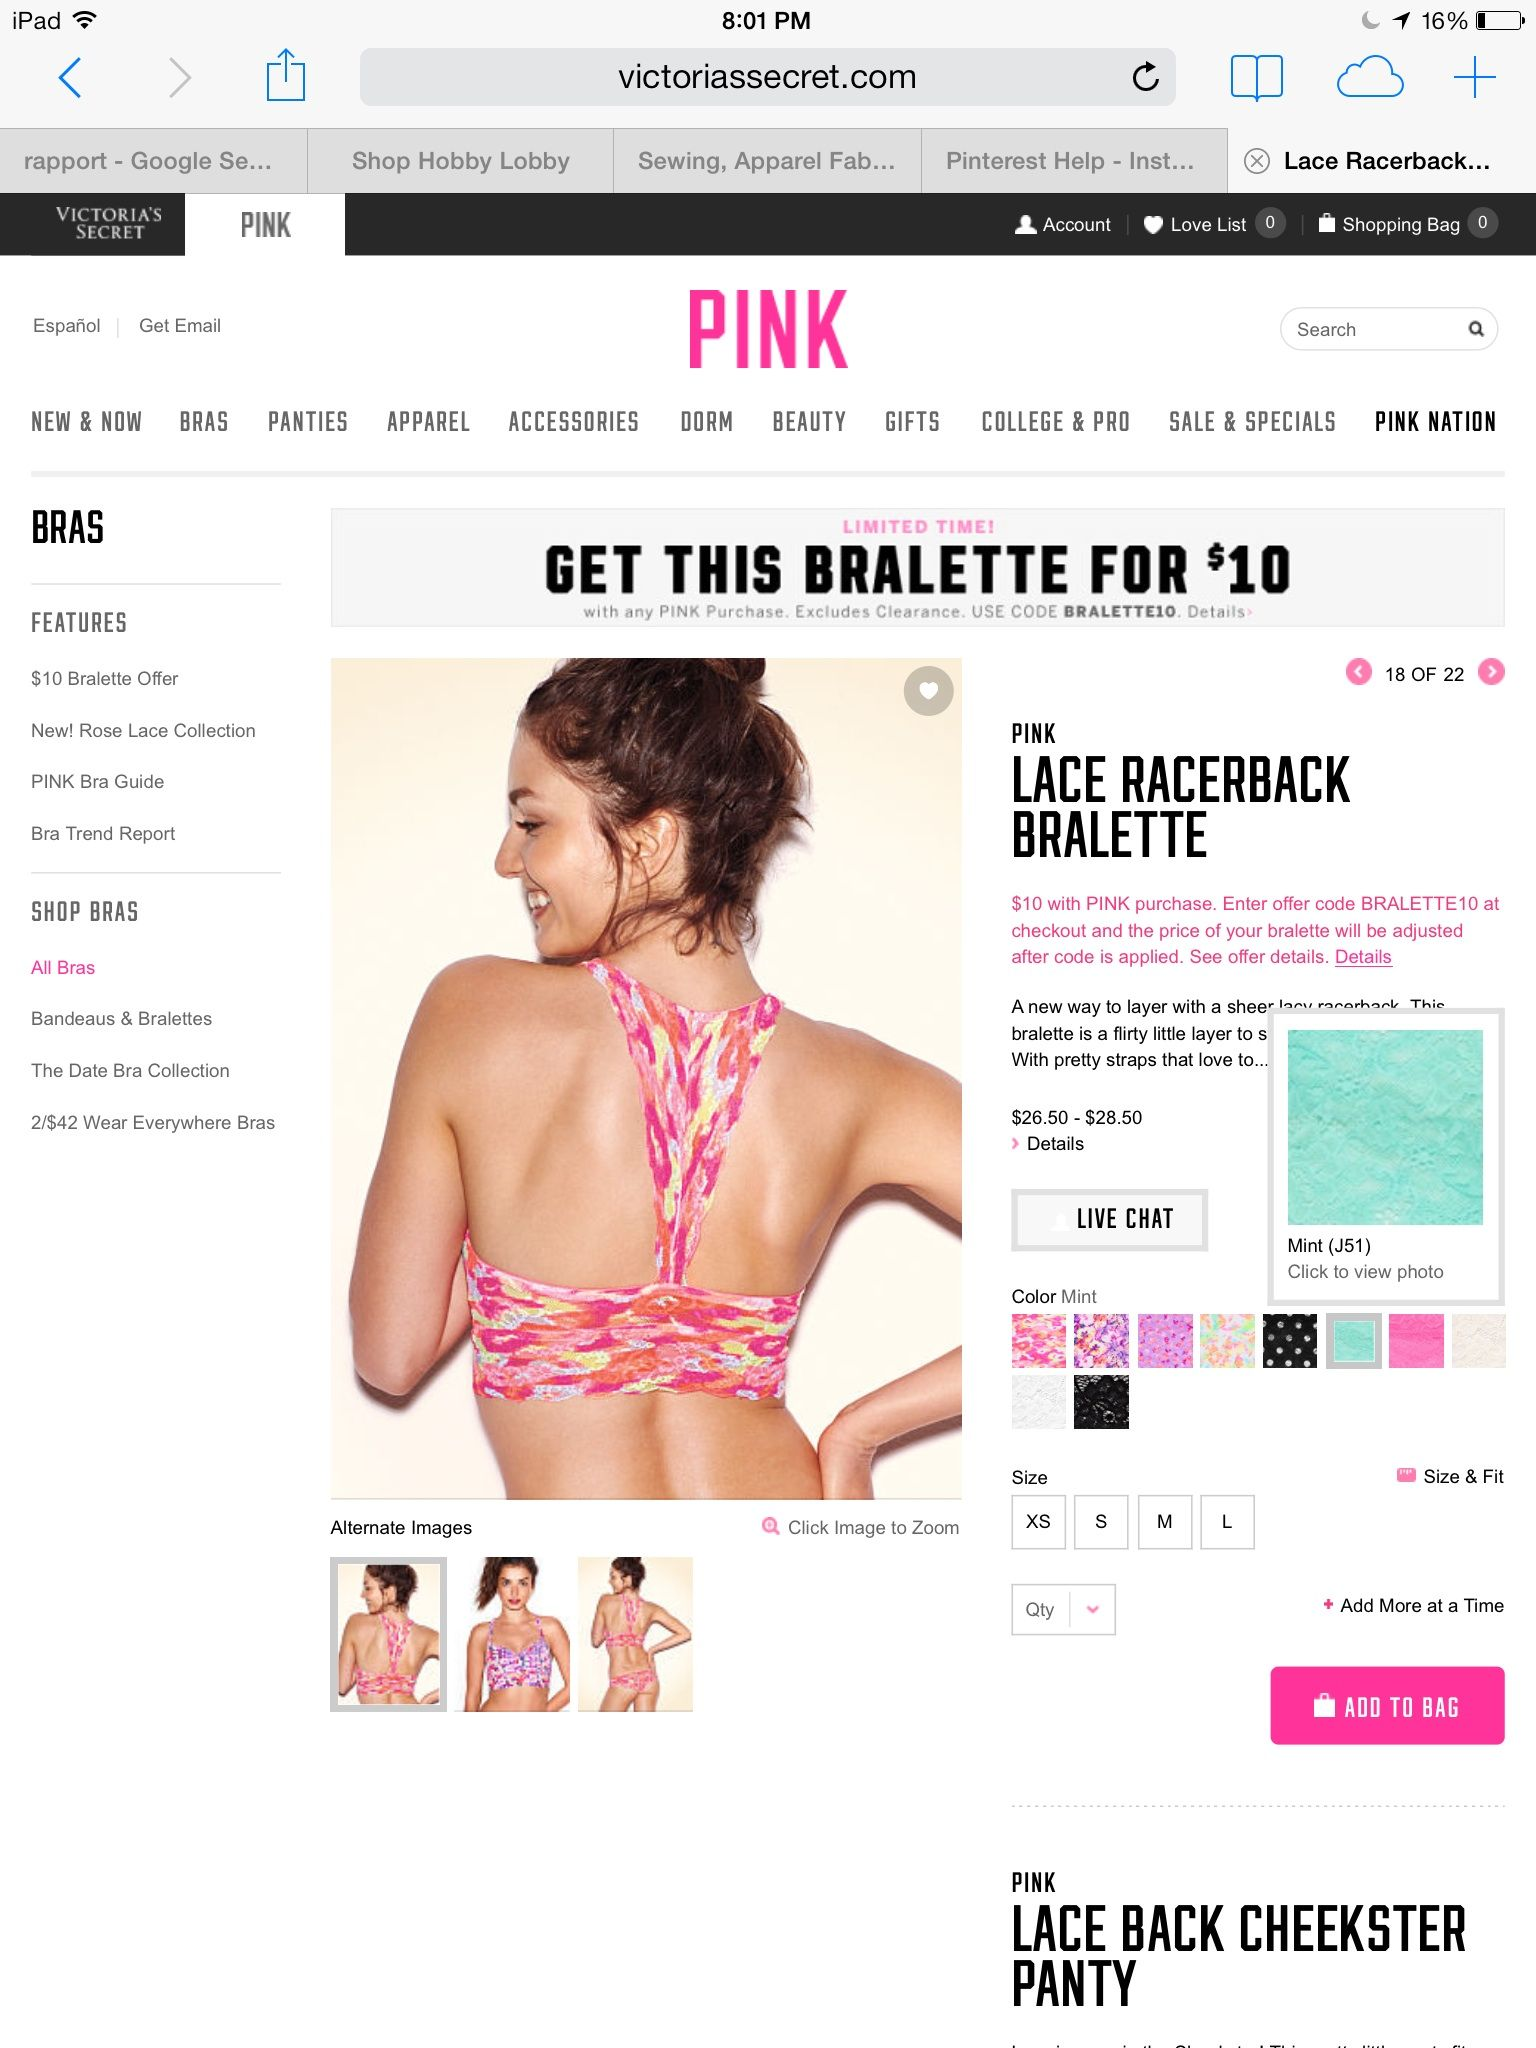 b3425986d2d5c The bralette looks super comfy!! Christmas Wishes